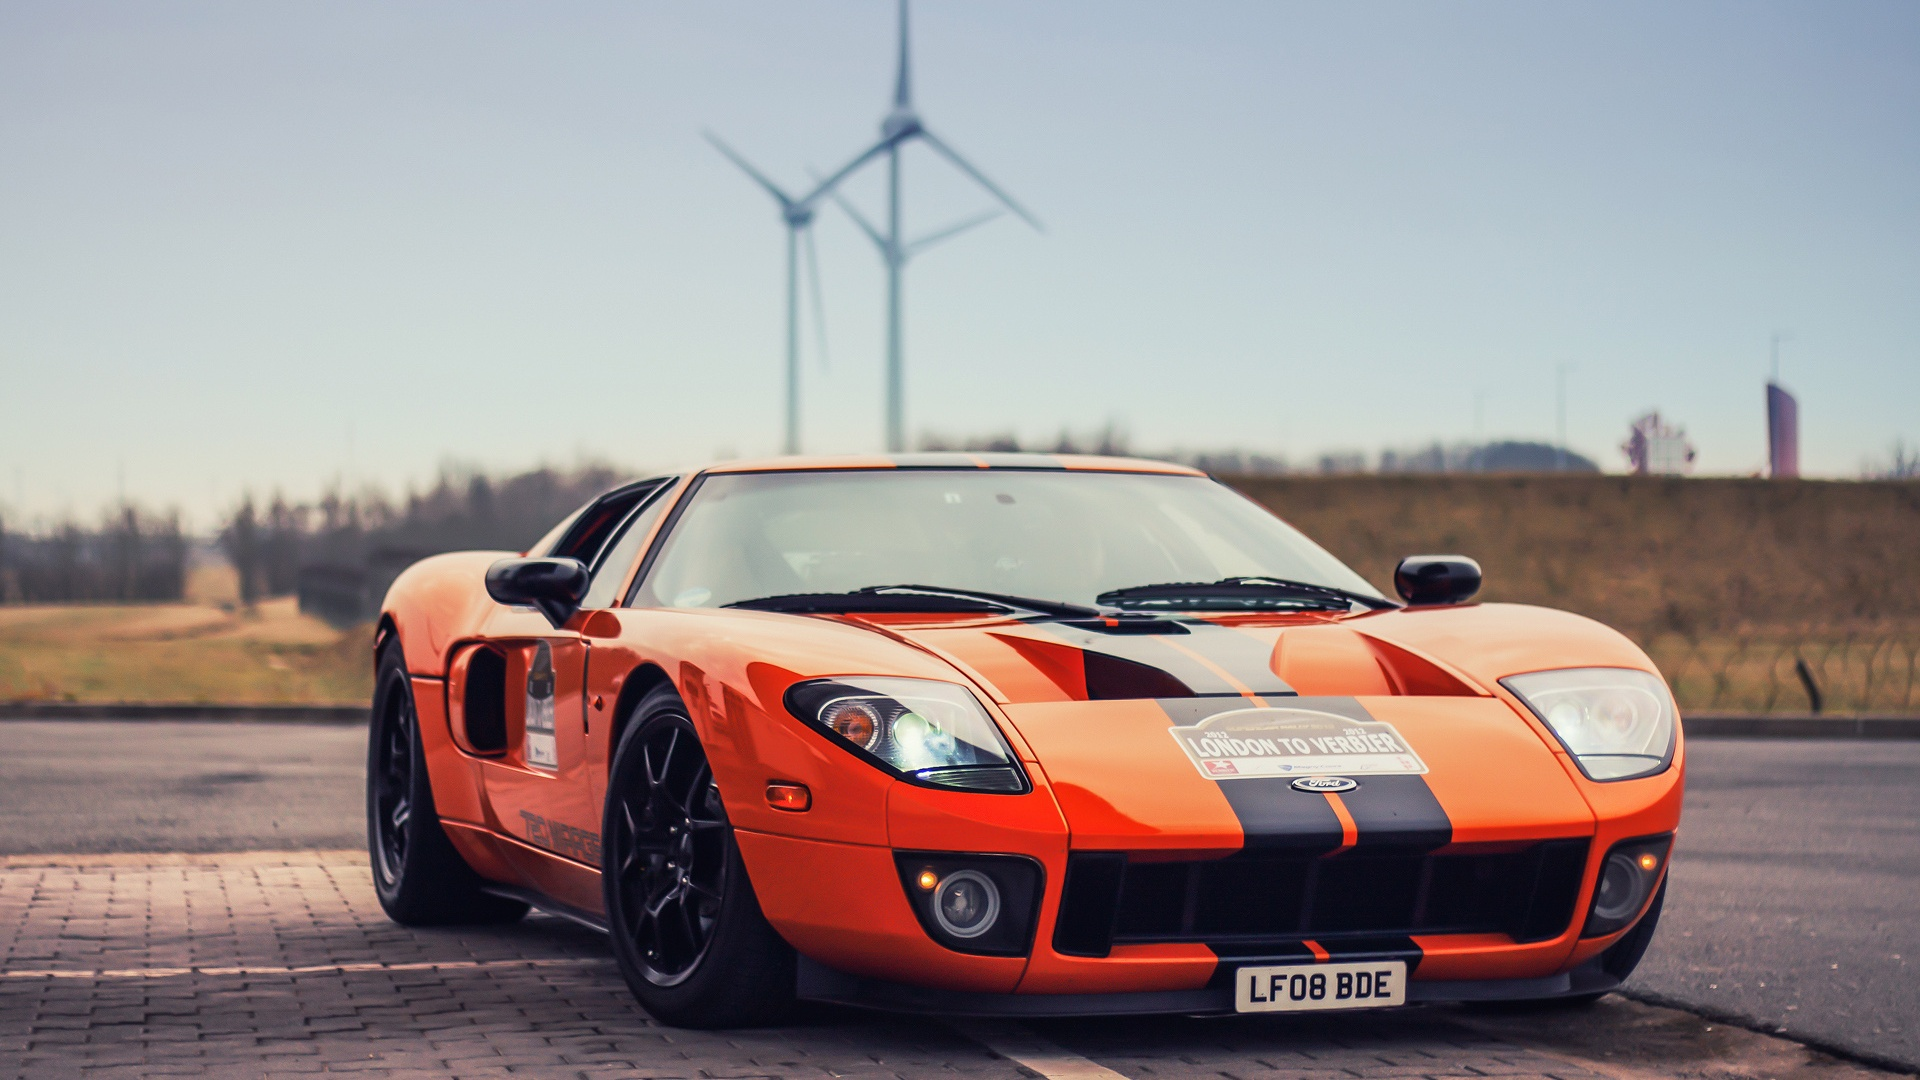 Ford Gt Orange Ford Gt Wallpaper 40096079 Fanpop